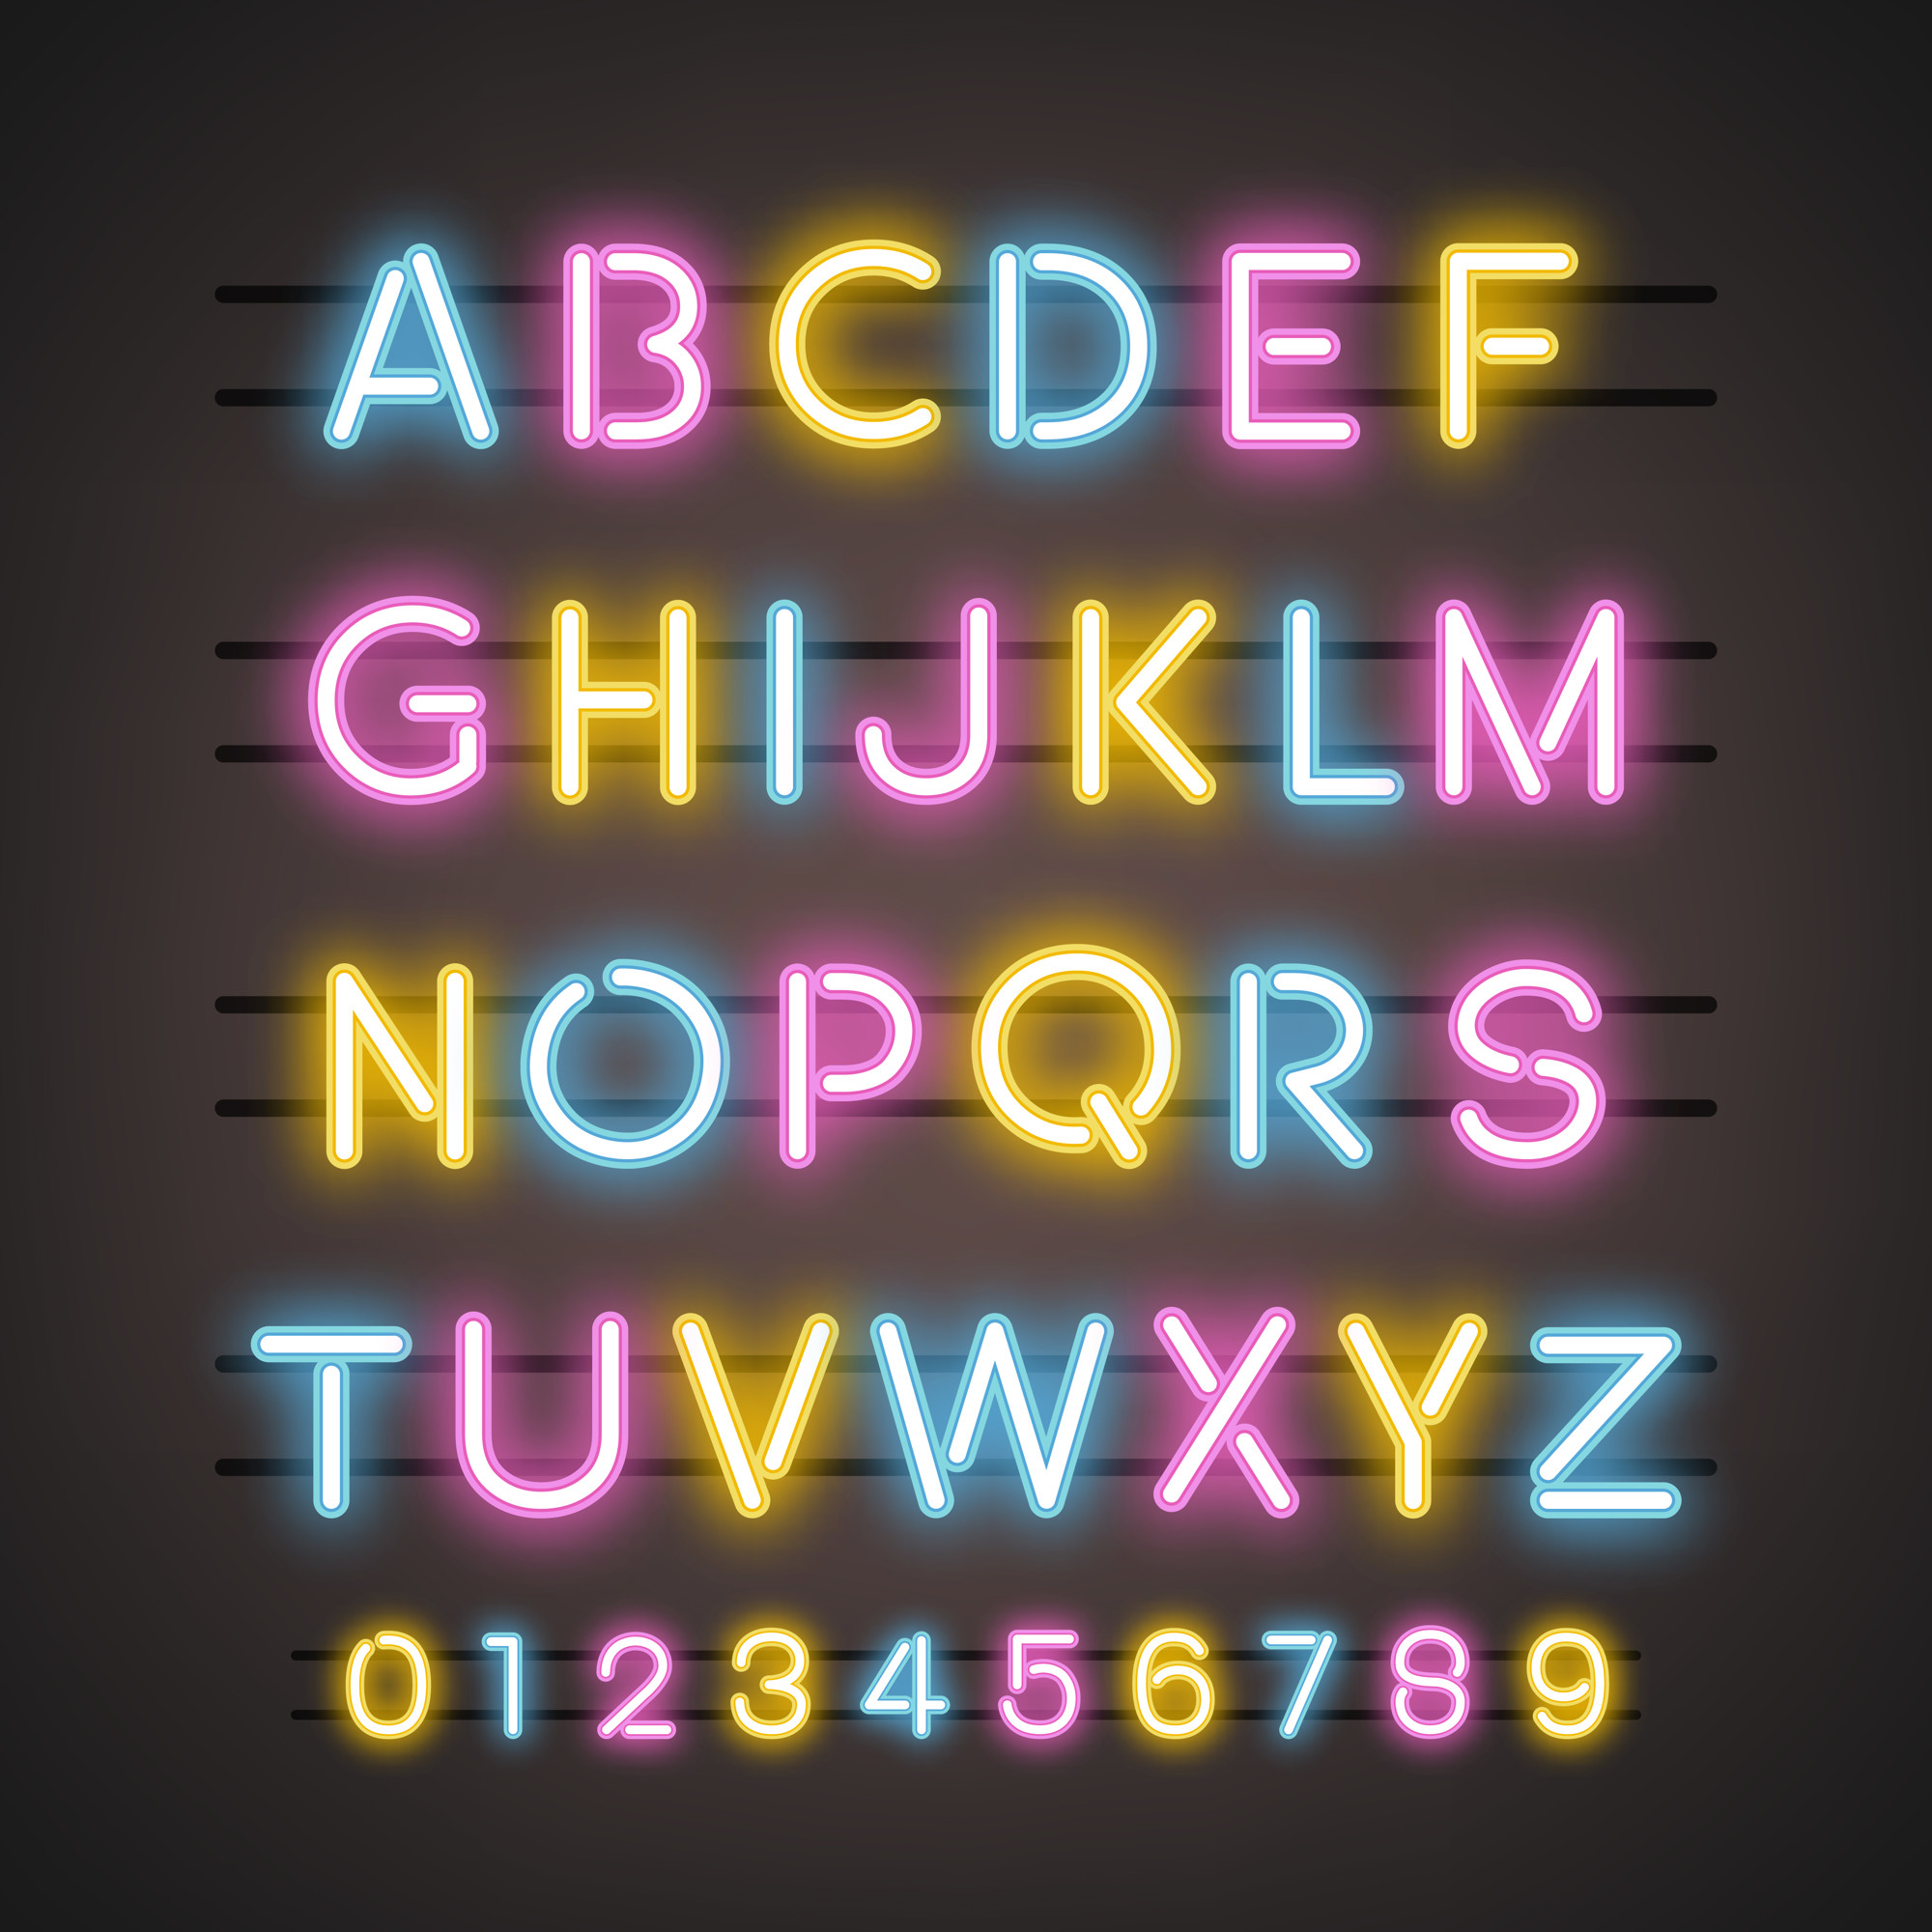 The Alphabet and numeral system